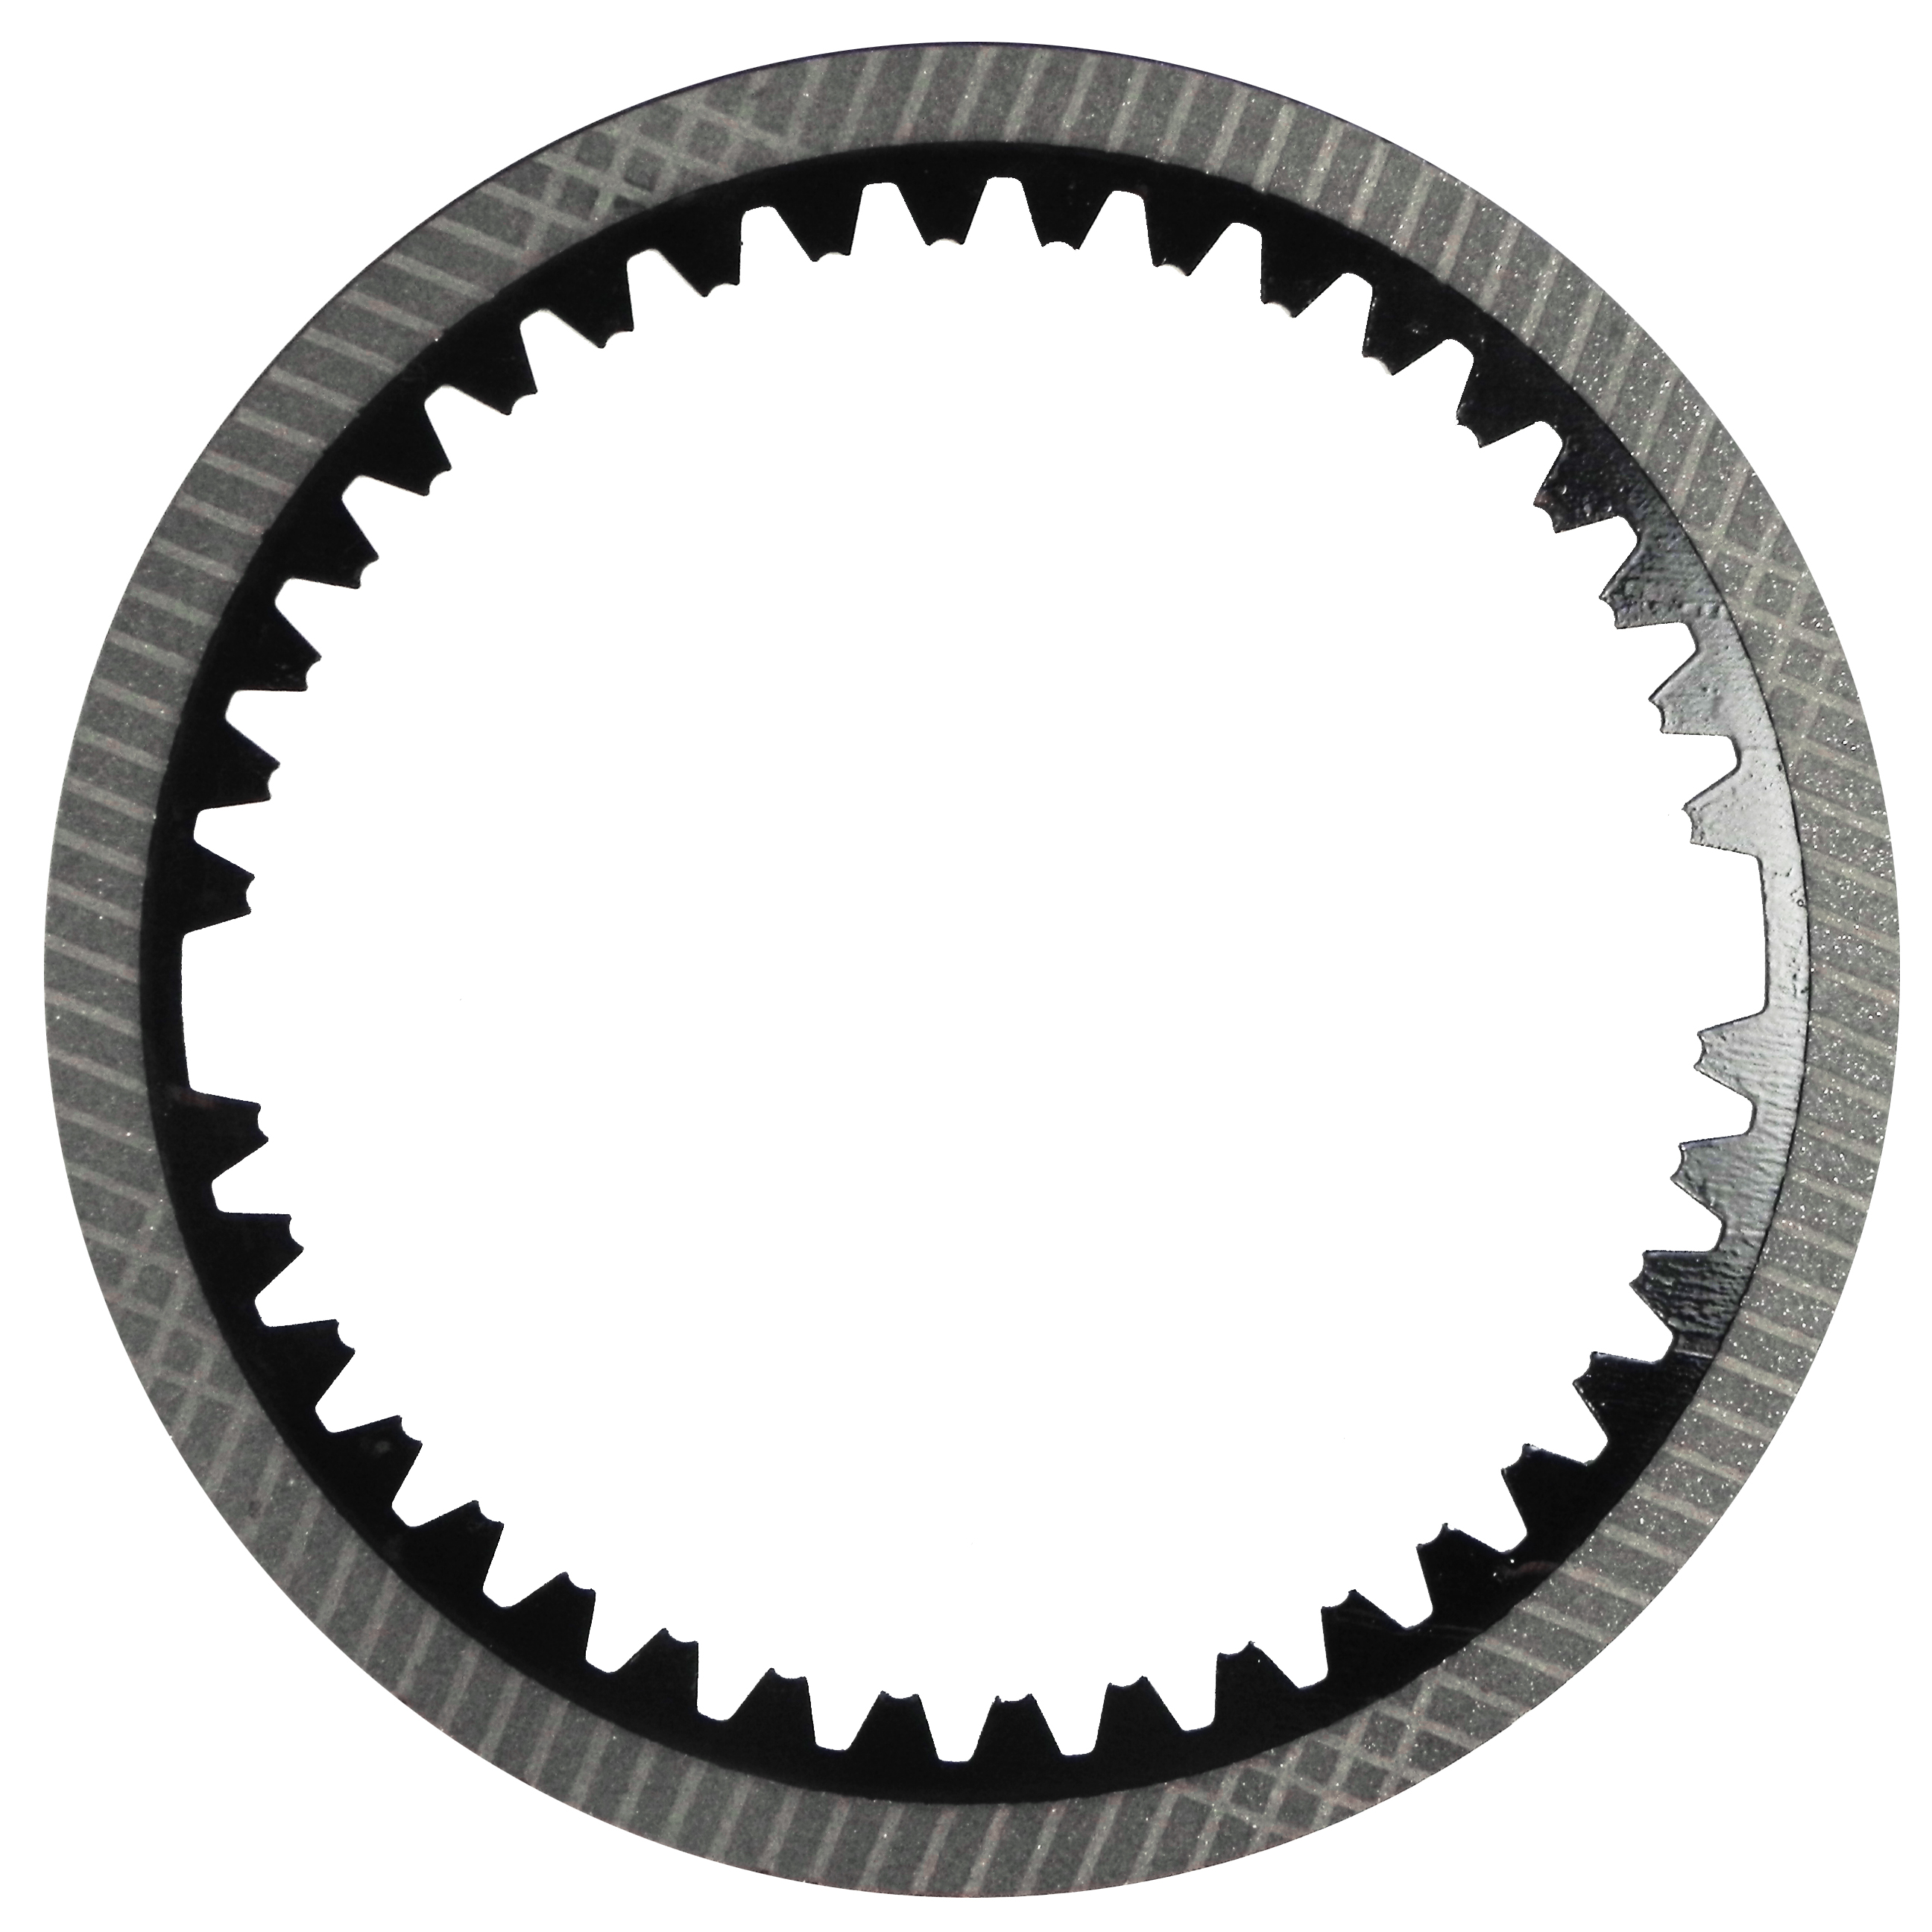 8HP45X, 8HP55A, 8HP55AH, 8HP70XH, 8HP90 GPZ Friction Clutch Plate